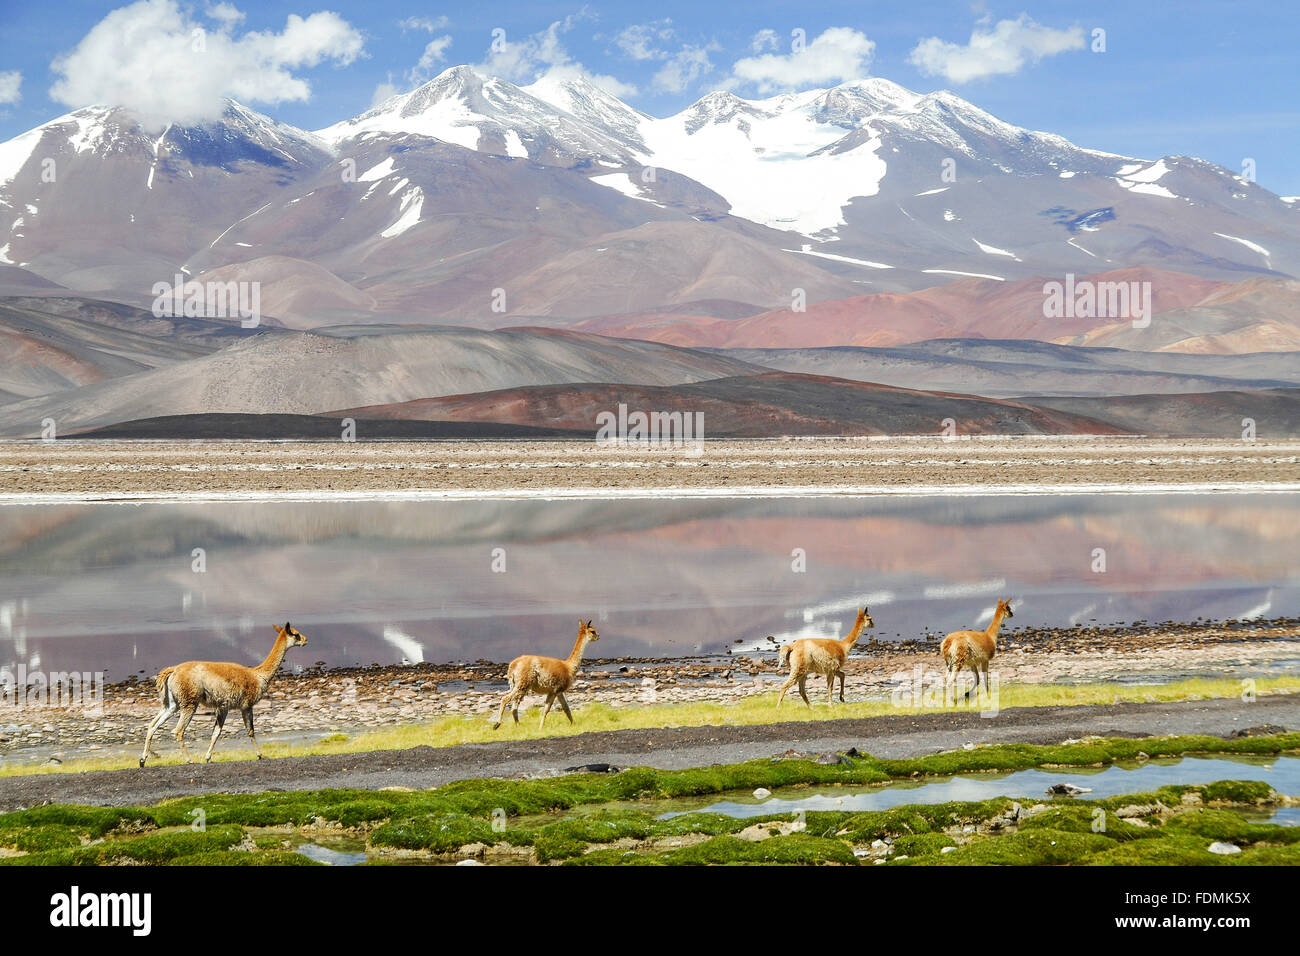 Cordinheira landscape with llamas and Andean Volcano Pissis Incidental - Stock Image